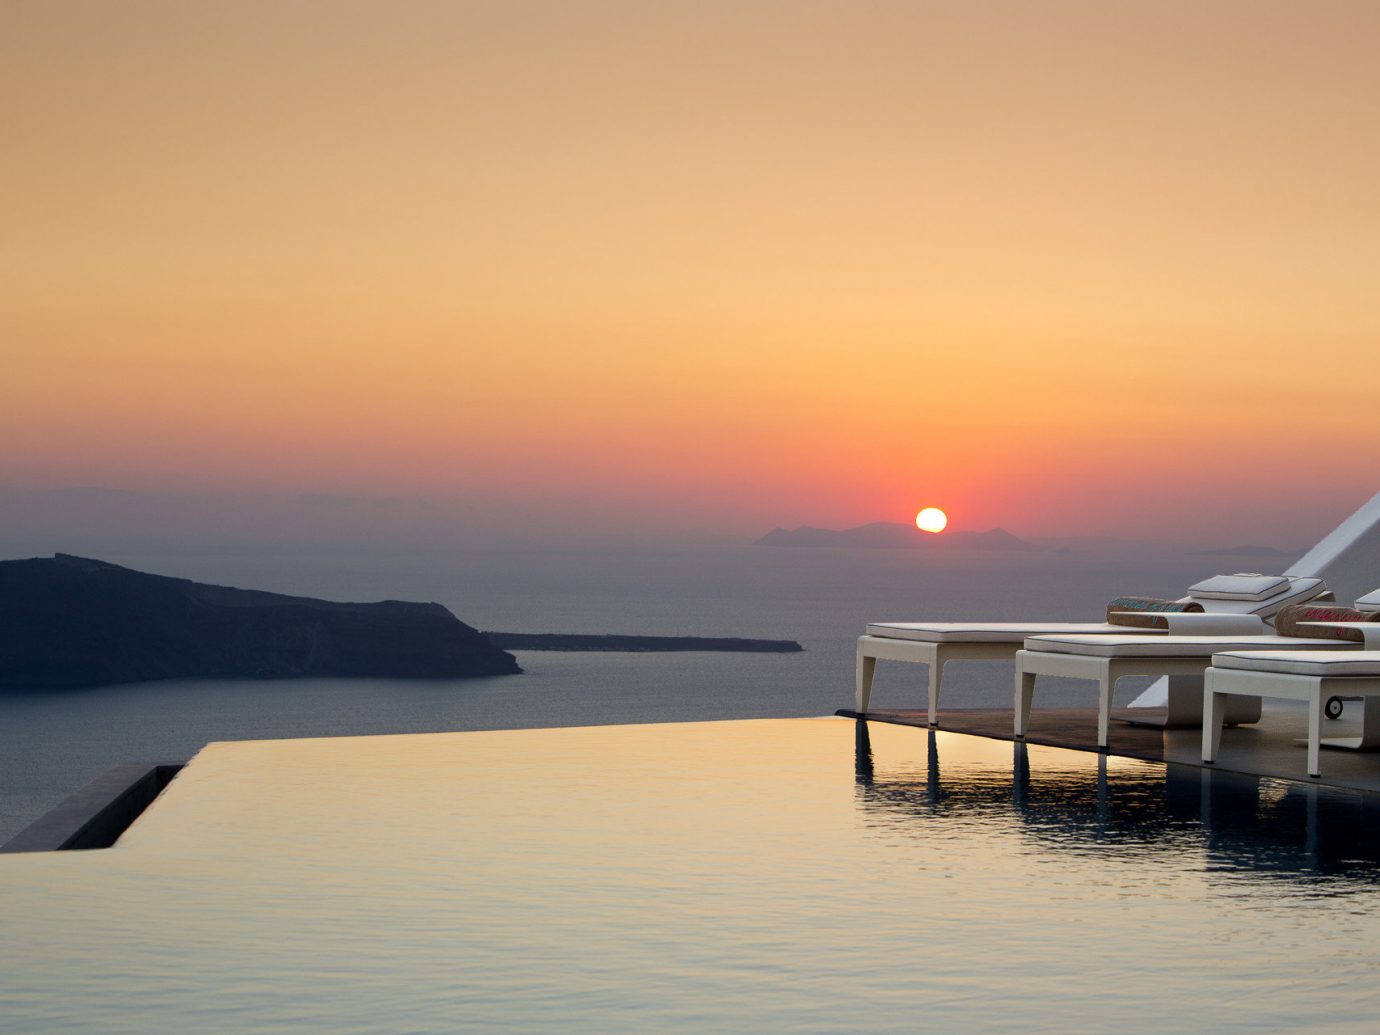 Hotels Trip Ideas water sky outdoor Boat scene Sea horizon sunrise Sunset dawn morning dusk afterglow Ocean vehicle reflection evening bay Coast Lake dock